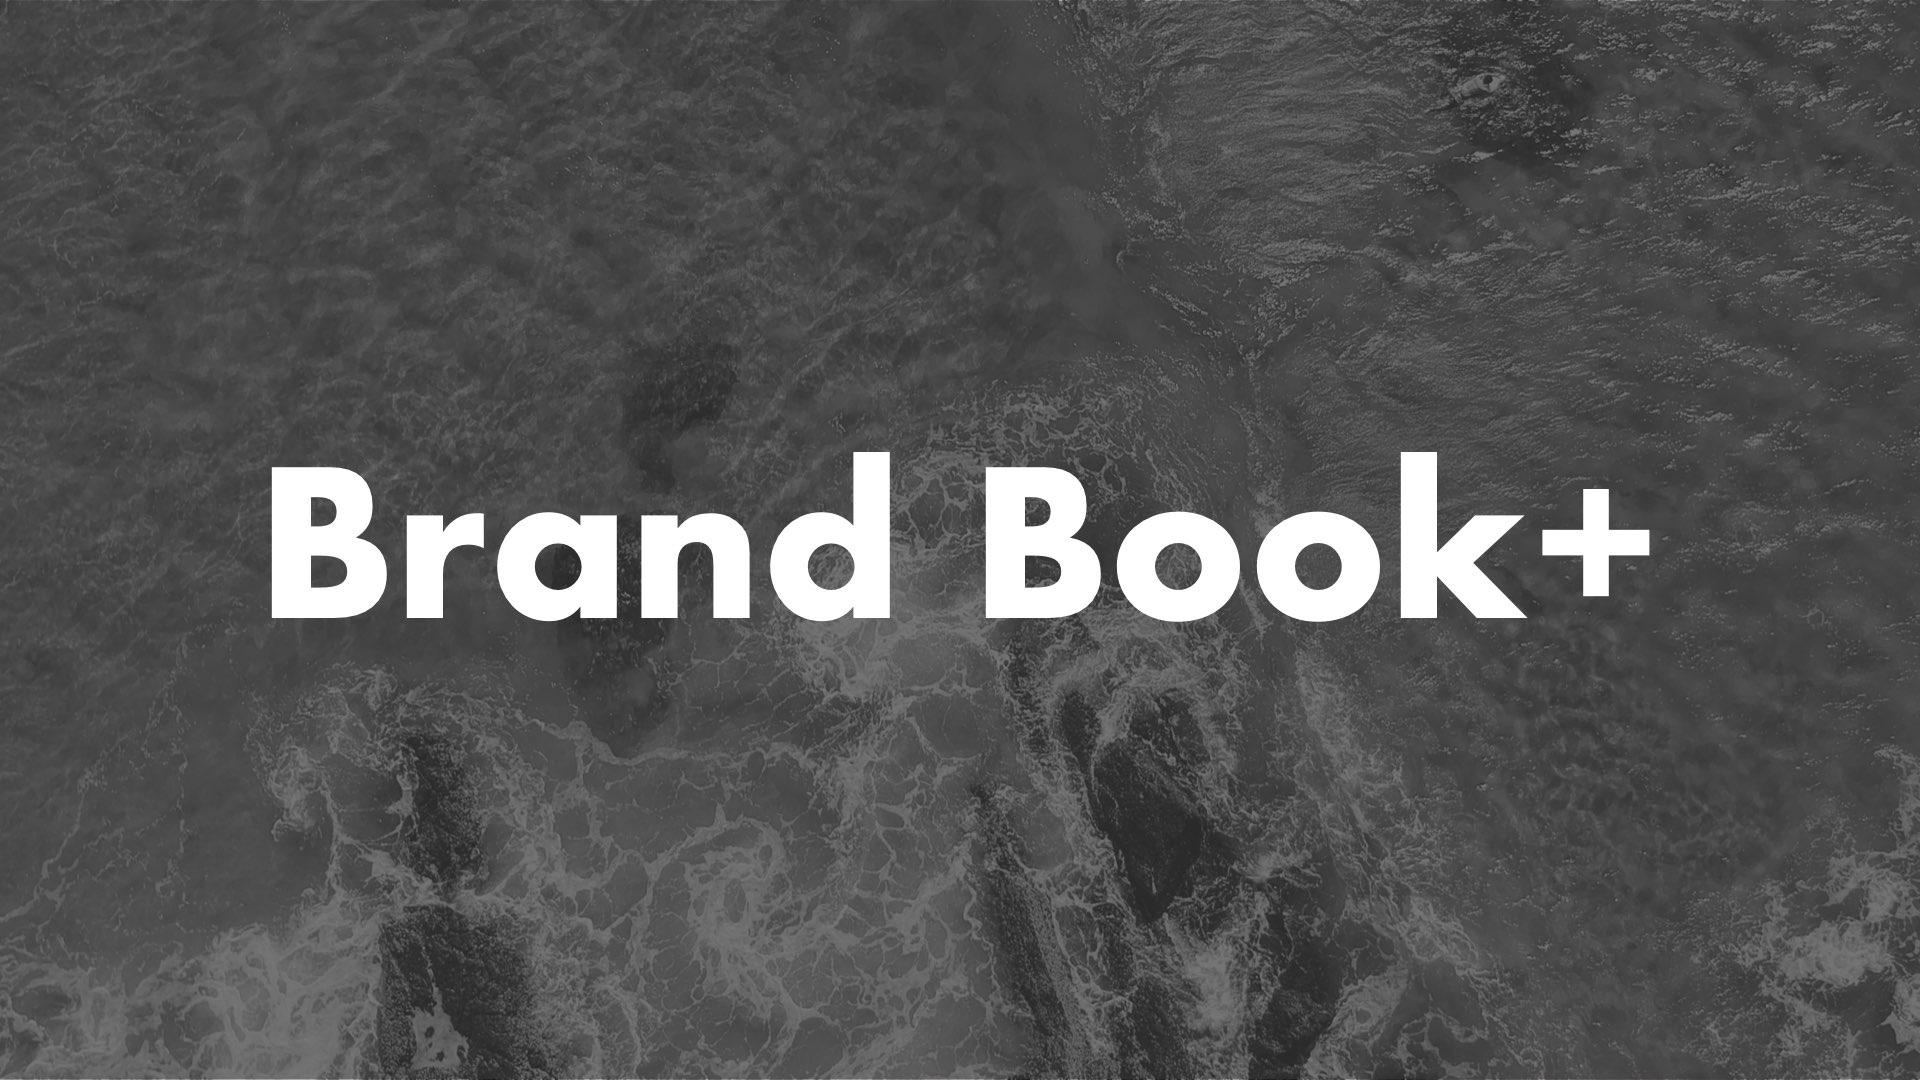 2500€ - Analysis of your brandA custom designed logotypeLogo usage guidelinesTypographyBrand patternStock image collection+ Keynote template+ Newsletter template+ Social media kit